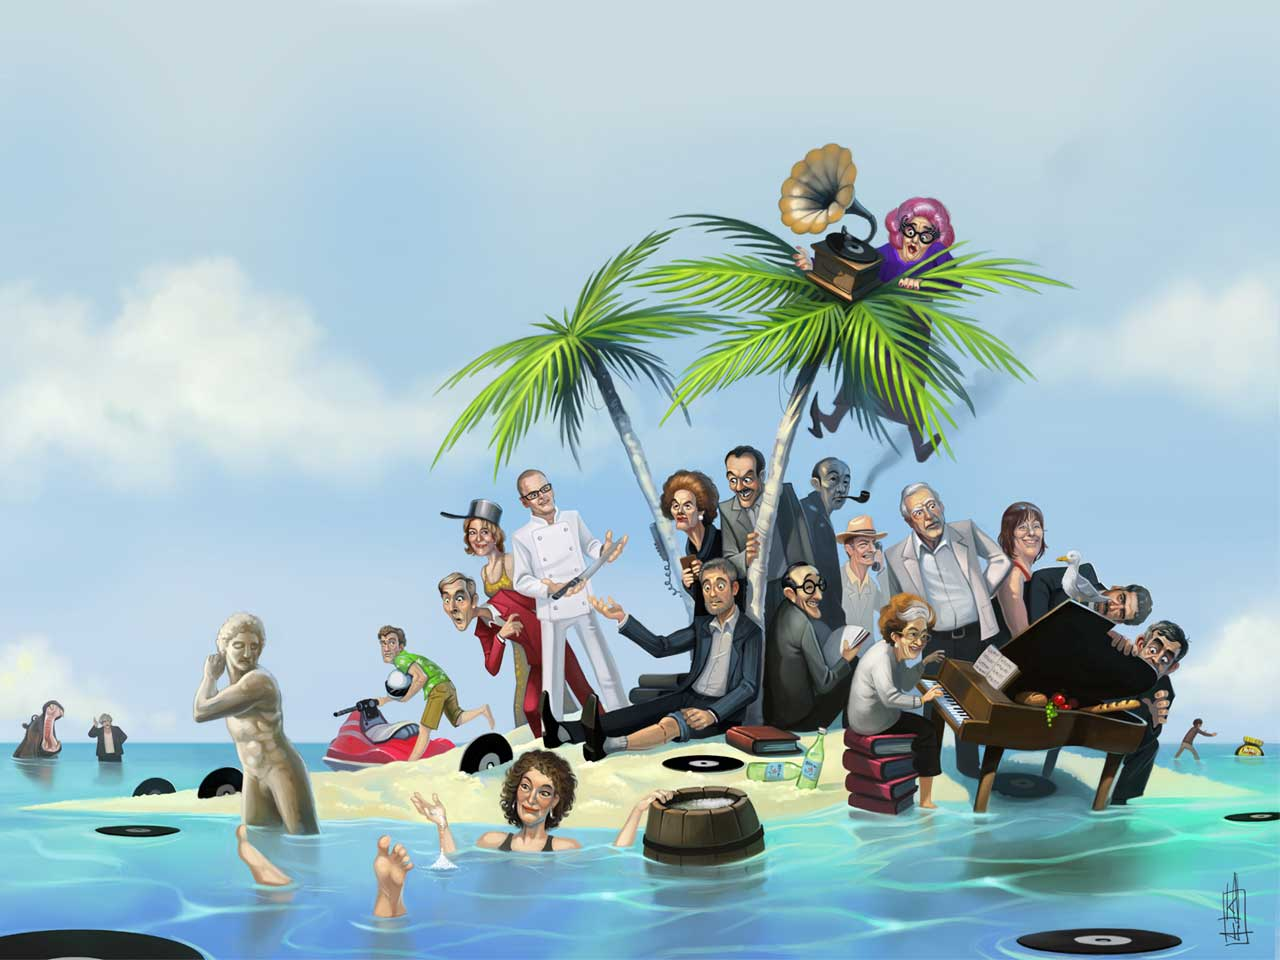 Various celebrities illustrated, marooned on a desert island